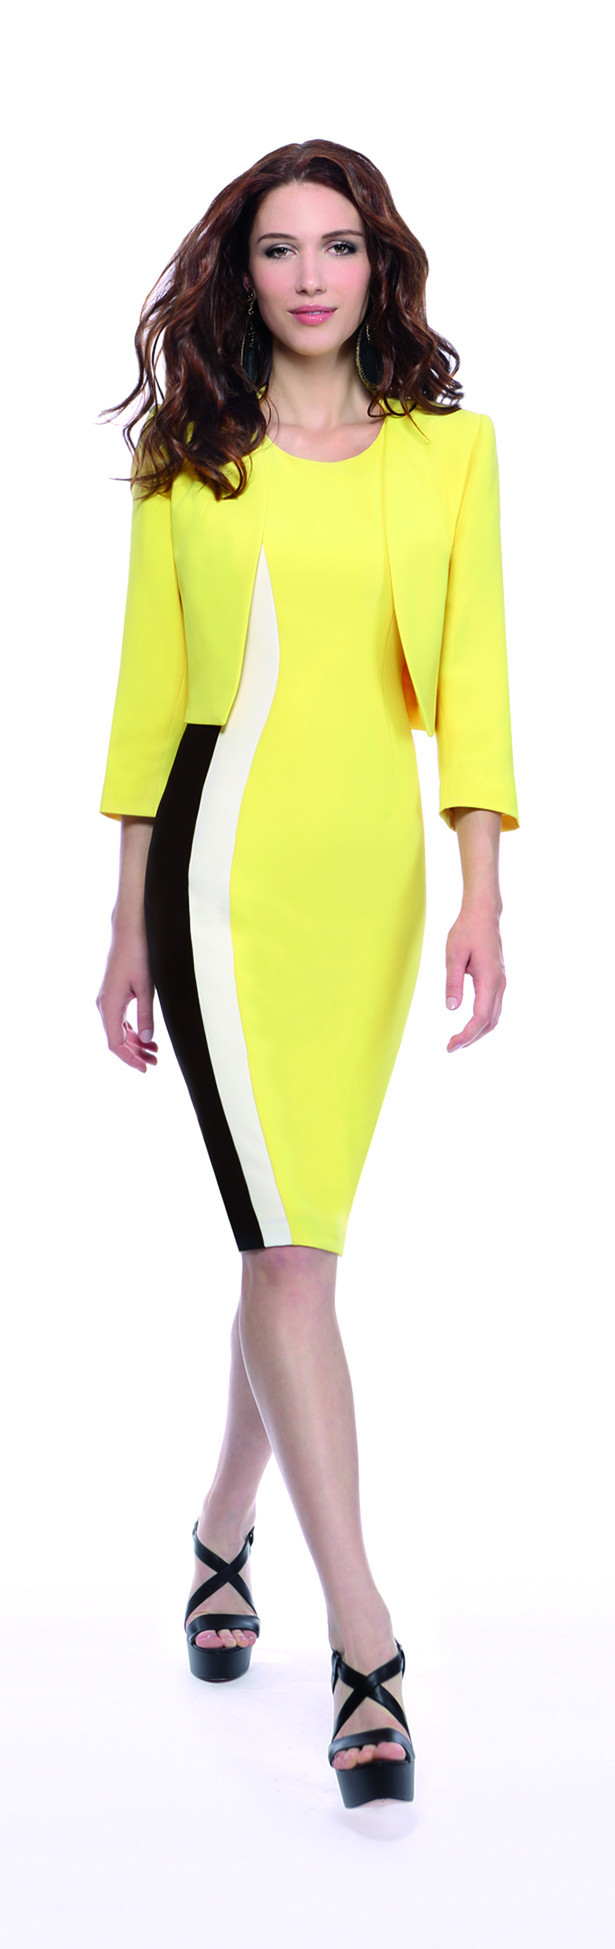 Michaela Louisa Lemon Bolero Jacket - collar: round collar/collarless; style: boxy; predominant colour: yellow; fit: straight cut (boxy); fibres: polyester/polyamide - 100%; occasions: occasion; sleeve length: 3/4 length; sleeve style: standard; texture group: crepes; collar break: low/open; pattern type: fabric; pattern: colourblock; length: cropped; season: s/s 2016; wardrobe: event